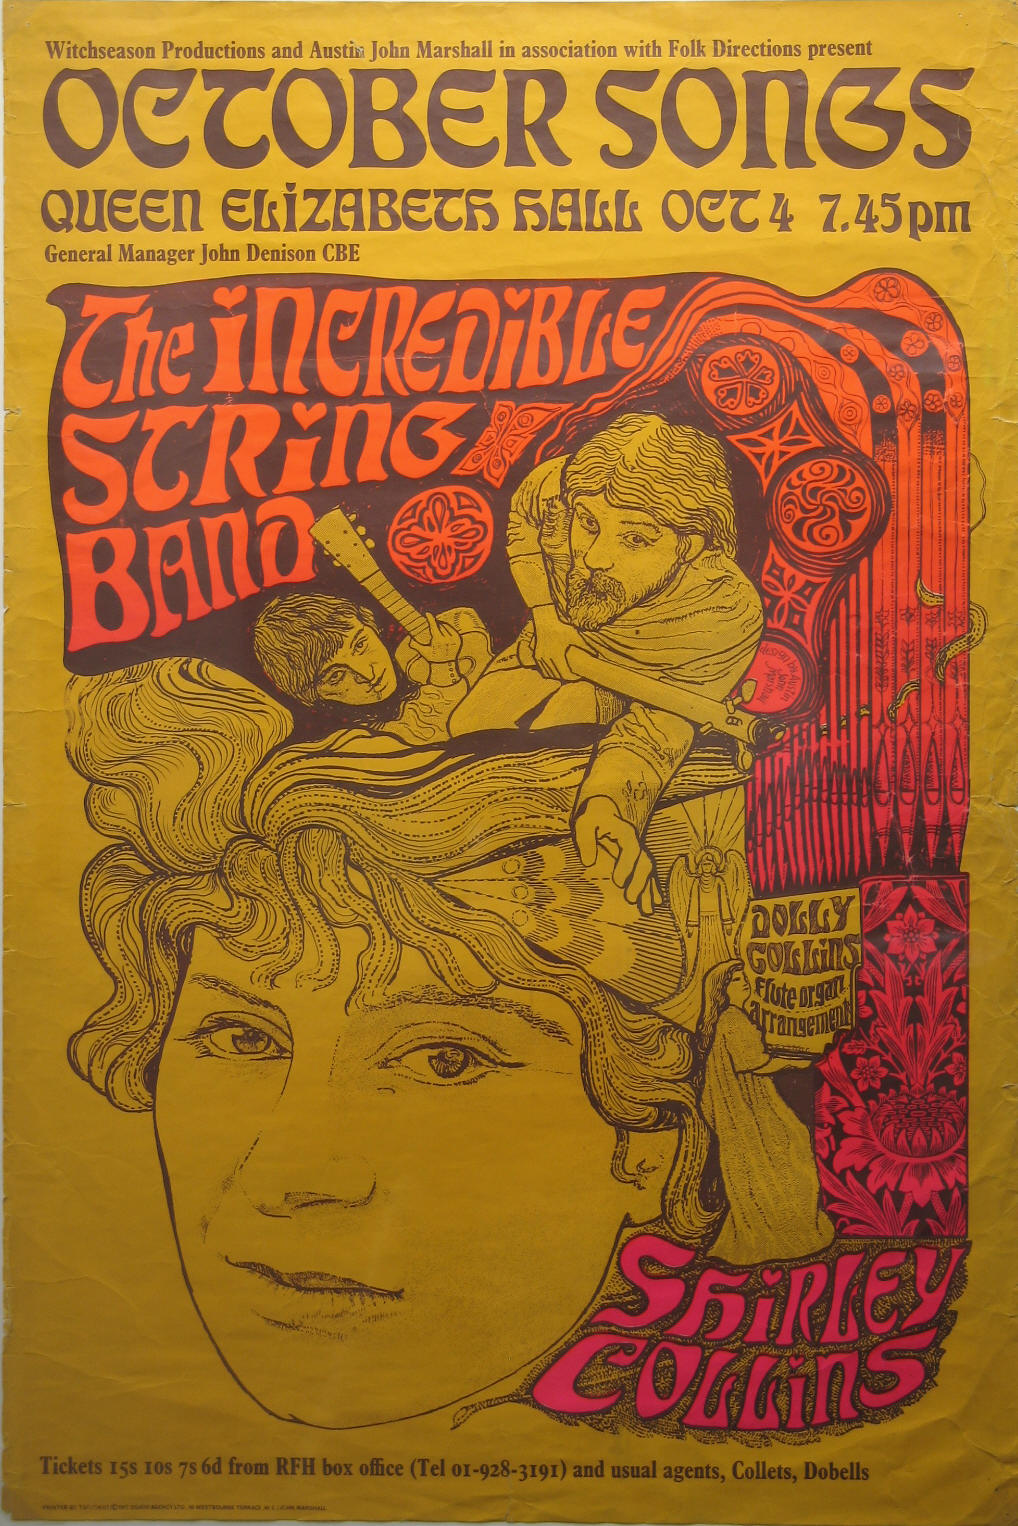 http://naturalismo.files.wordpress.com/2008/04/incredible-string-band-and-shirley-collins.jpg